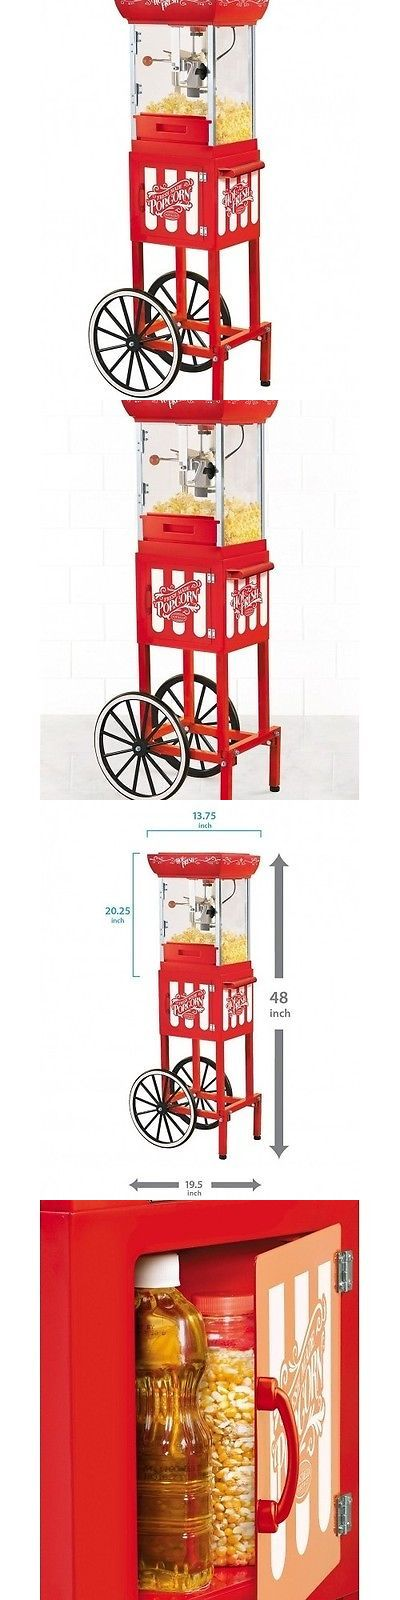 Popcorn Poppers 66752: Vintage Pop Corn Machine Cart Red Popper Maker Kettle Nostalgia Collection Movie -> BUY IT NOW ONLY: $106.67 on eBay!